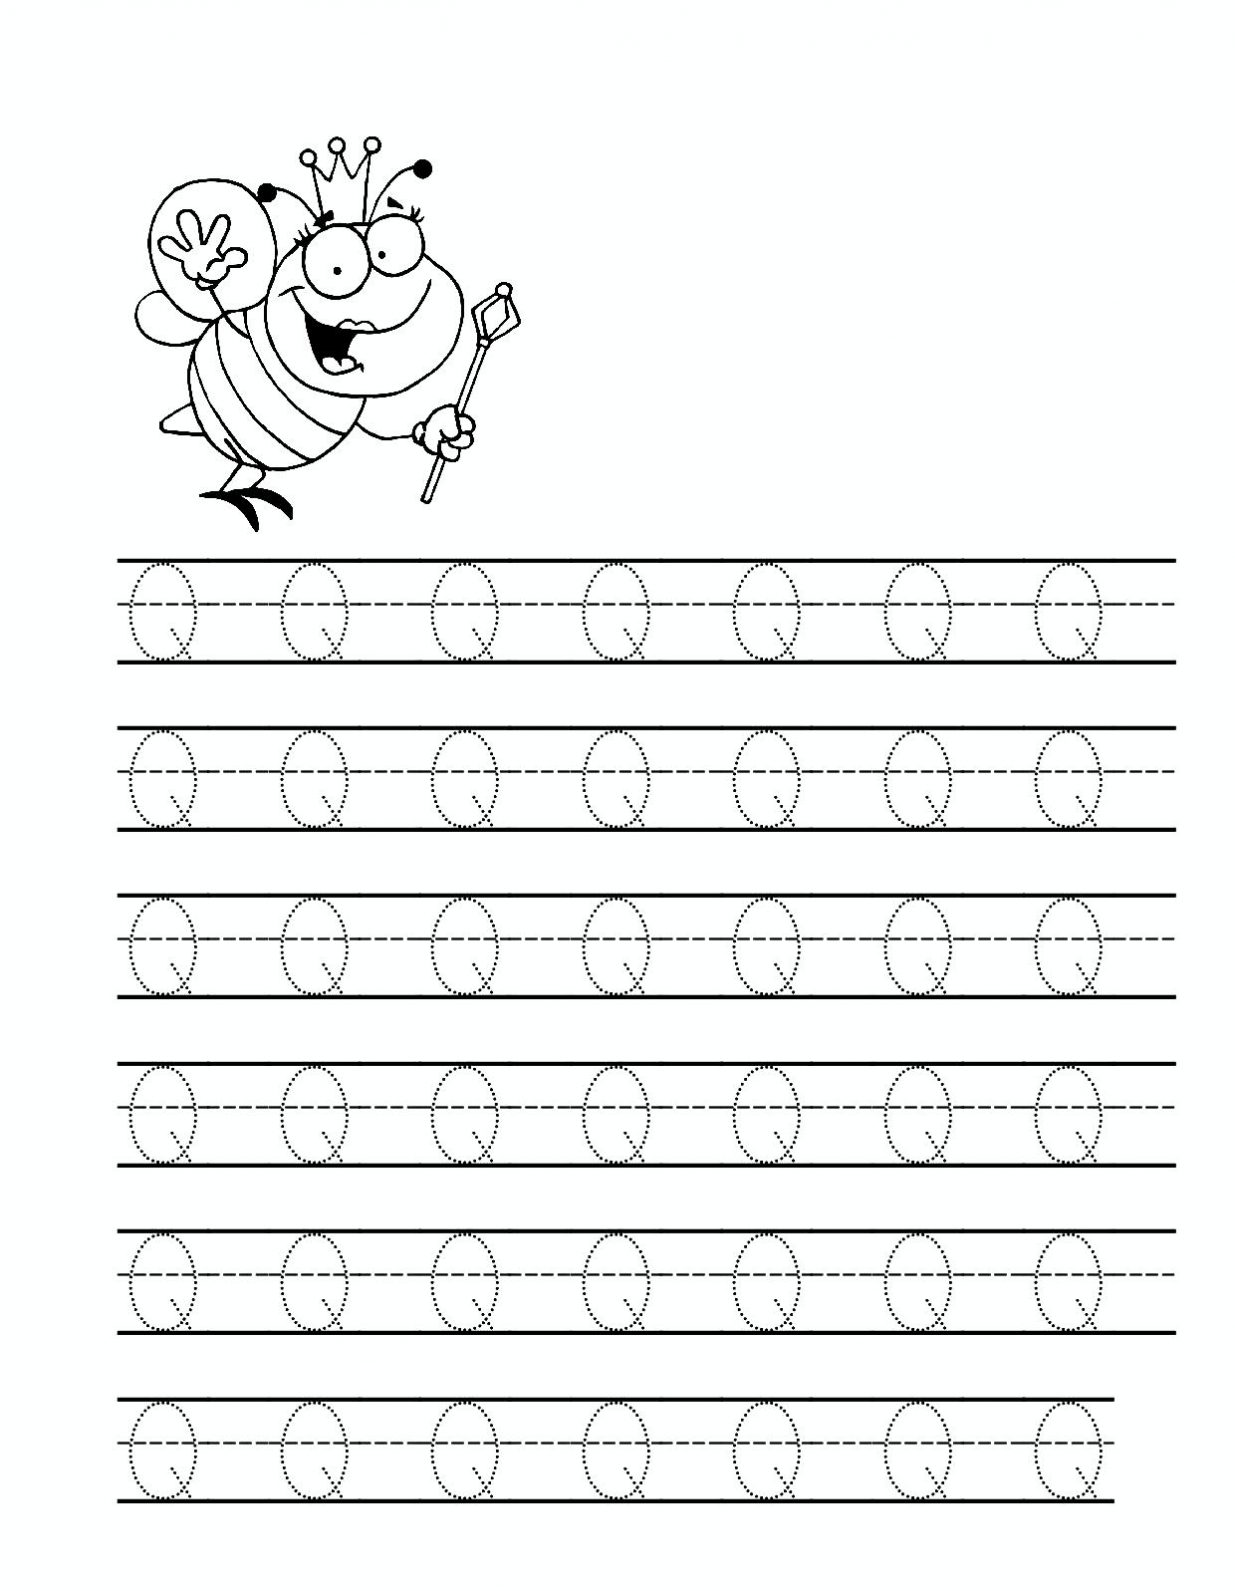 15 Educative Letter Q Worksheets